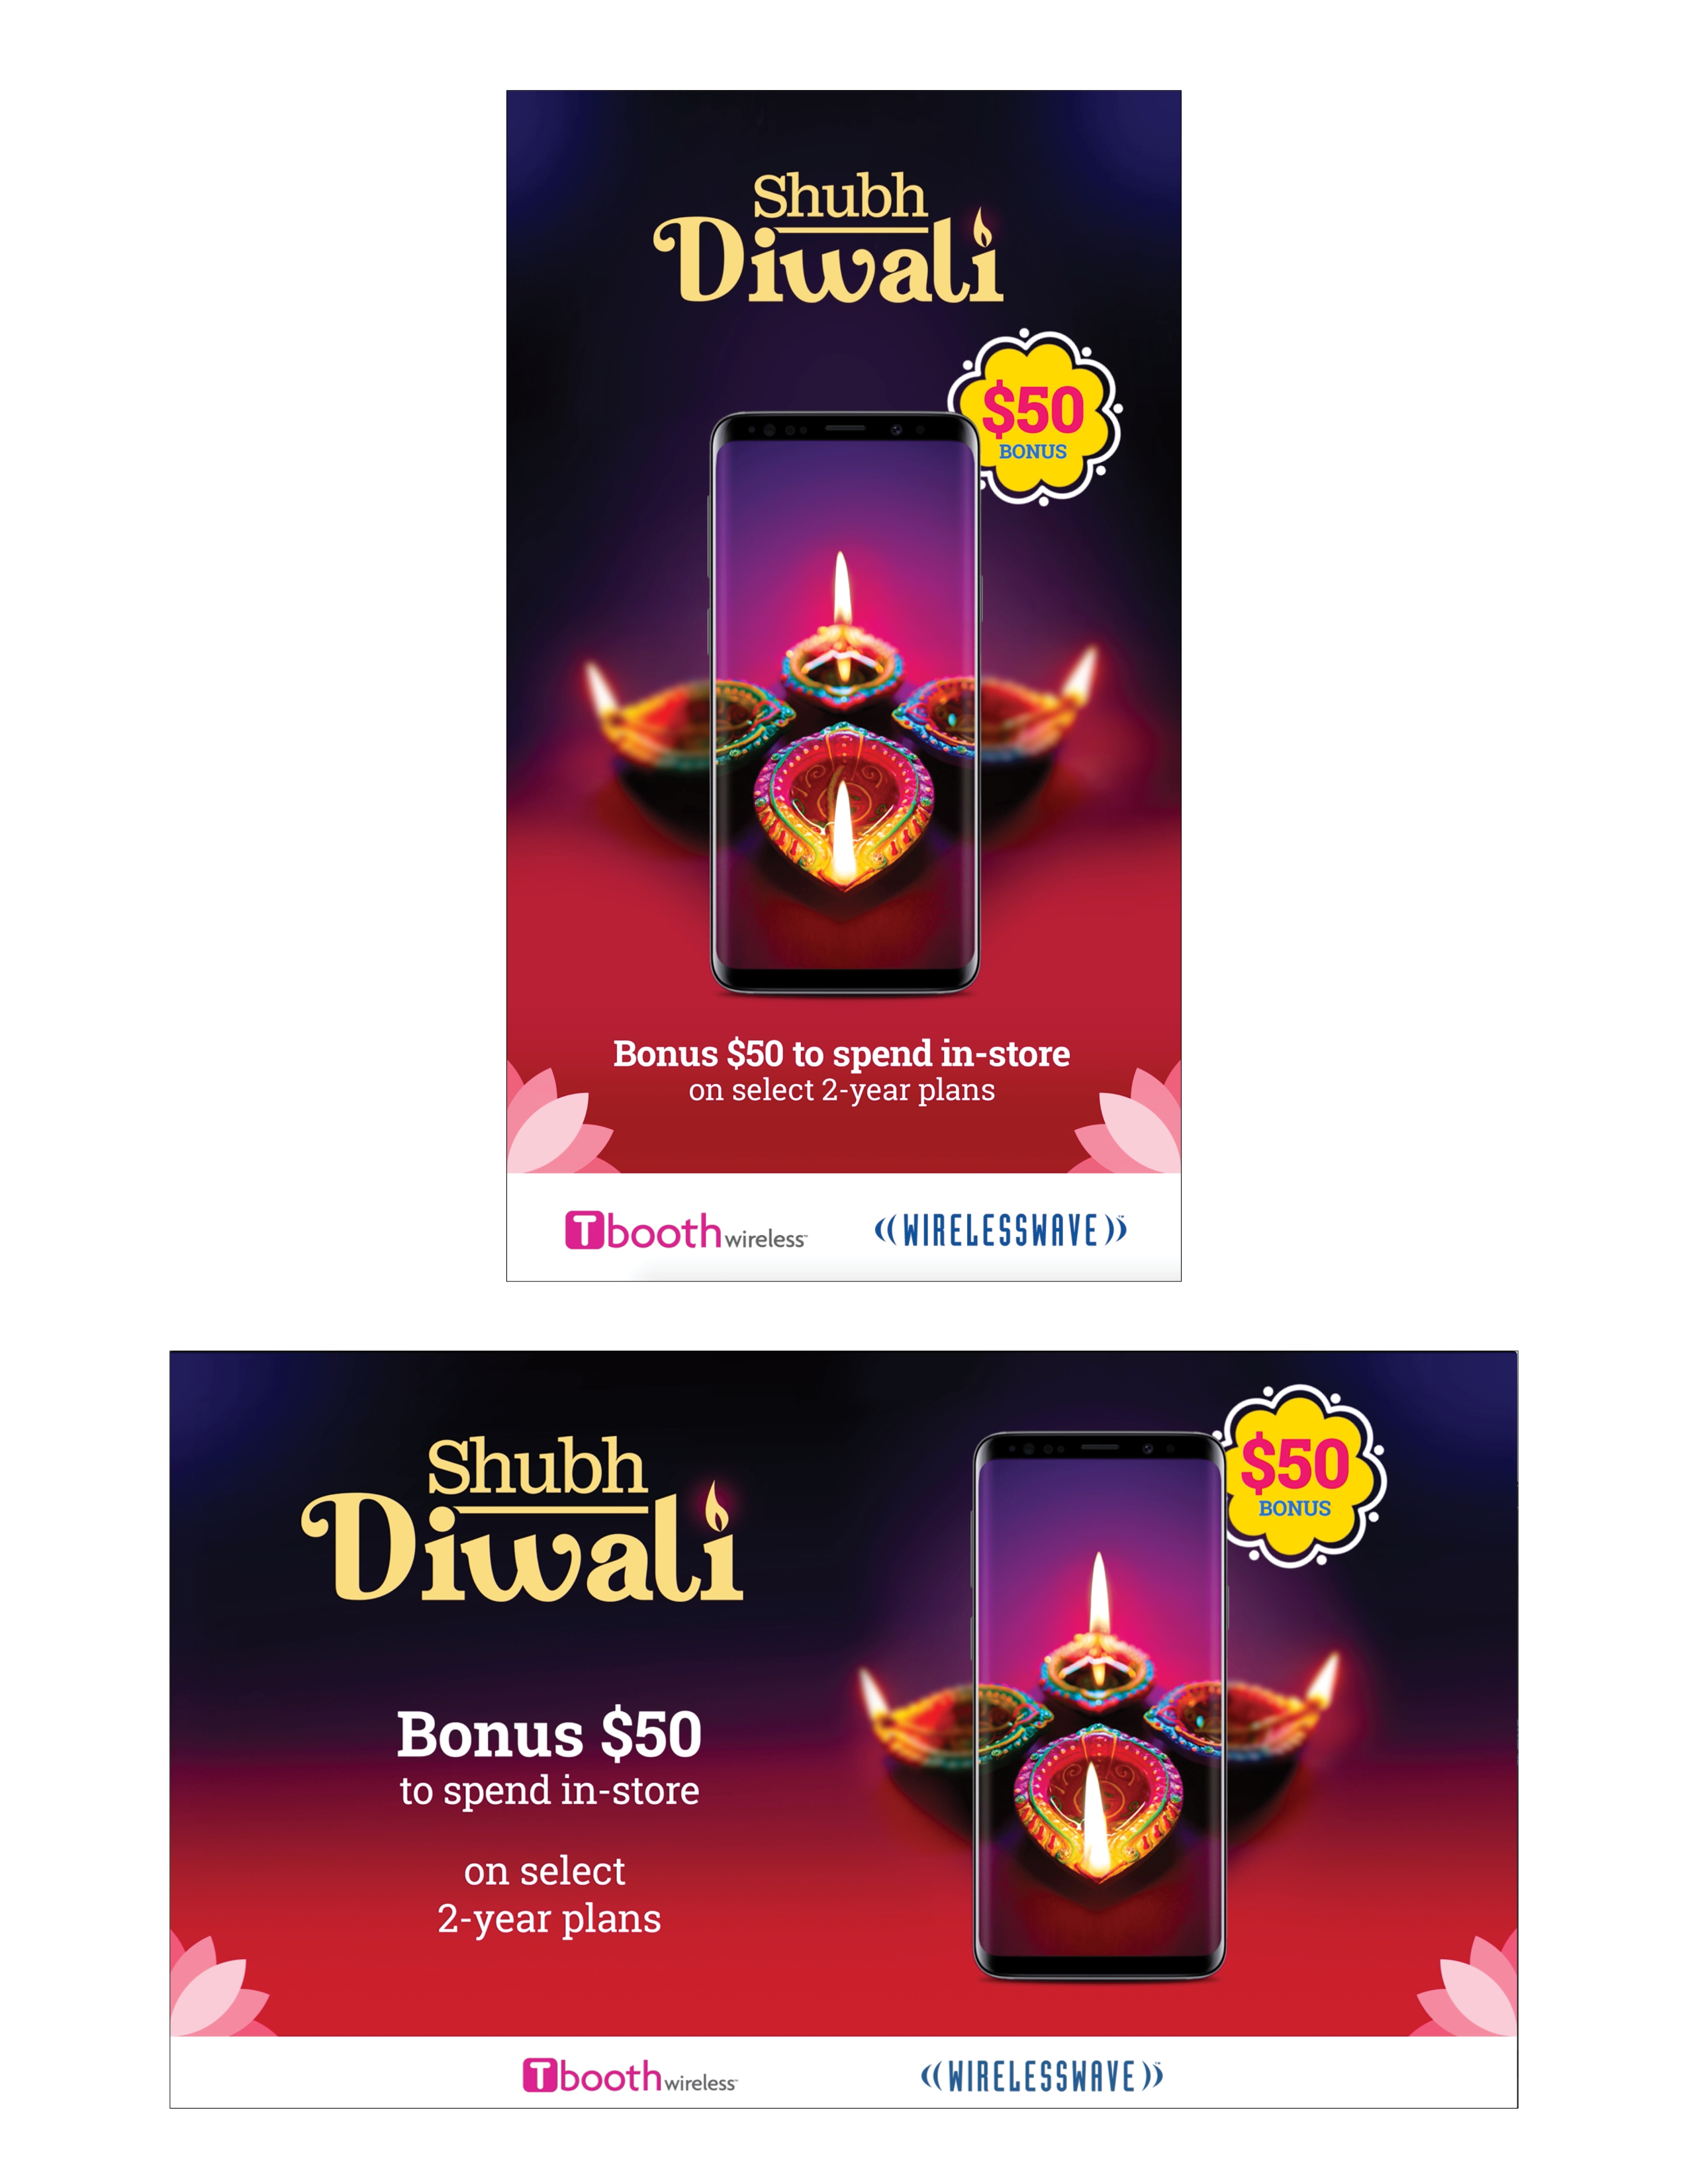 Diwali marketing to south asians